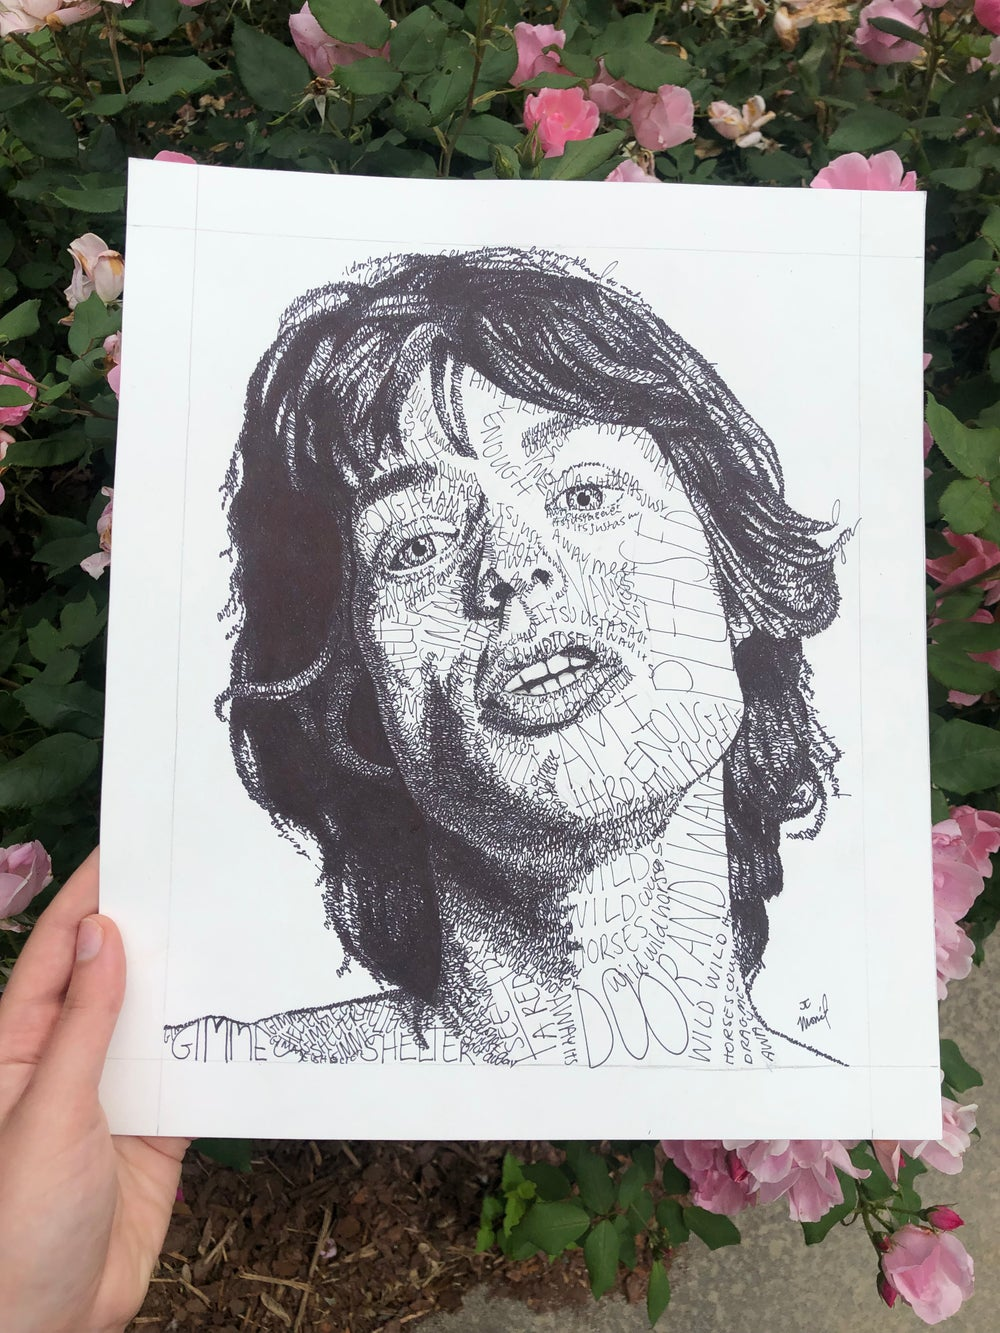 Image of Mick Jagger